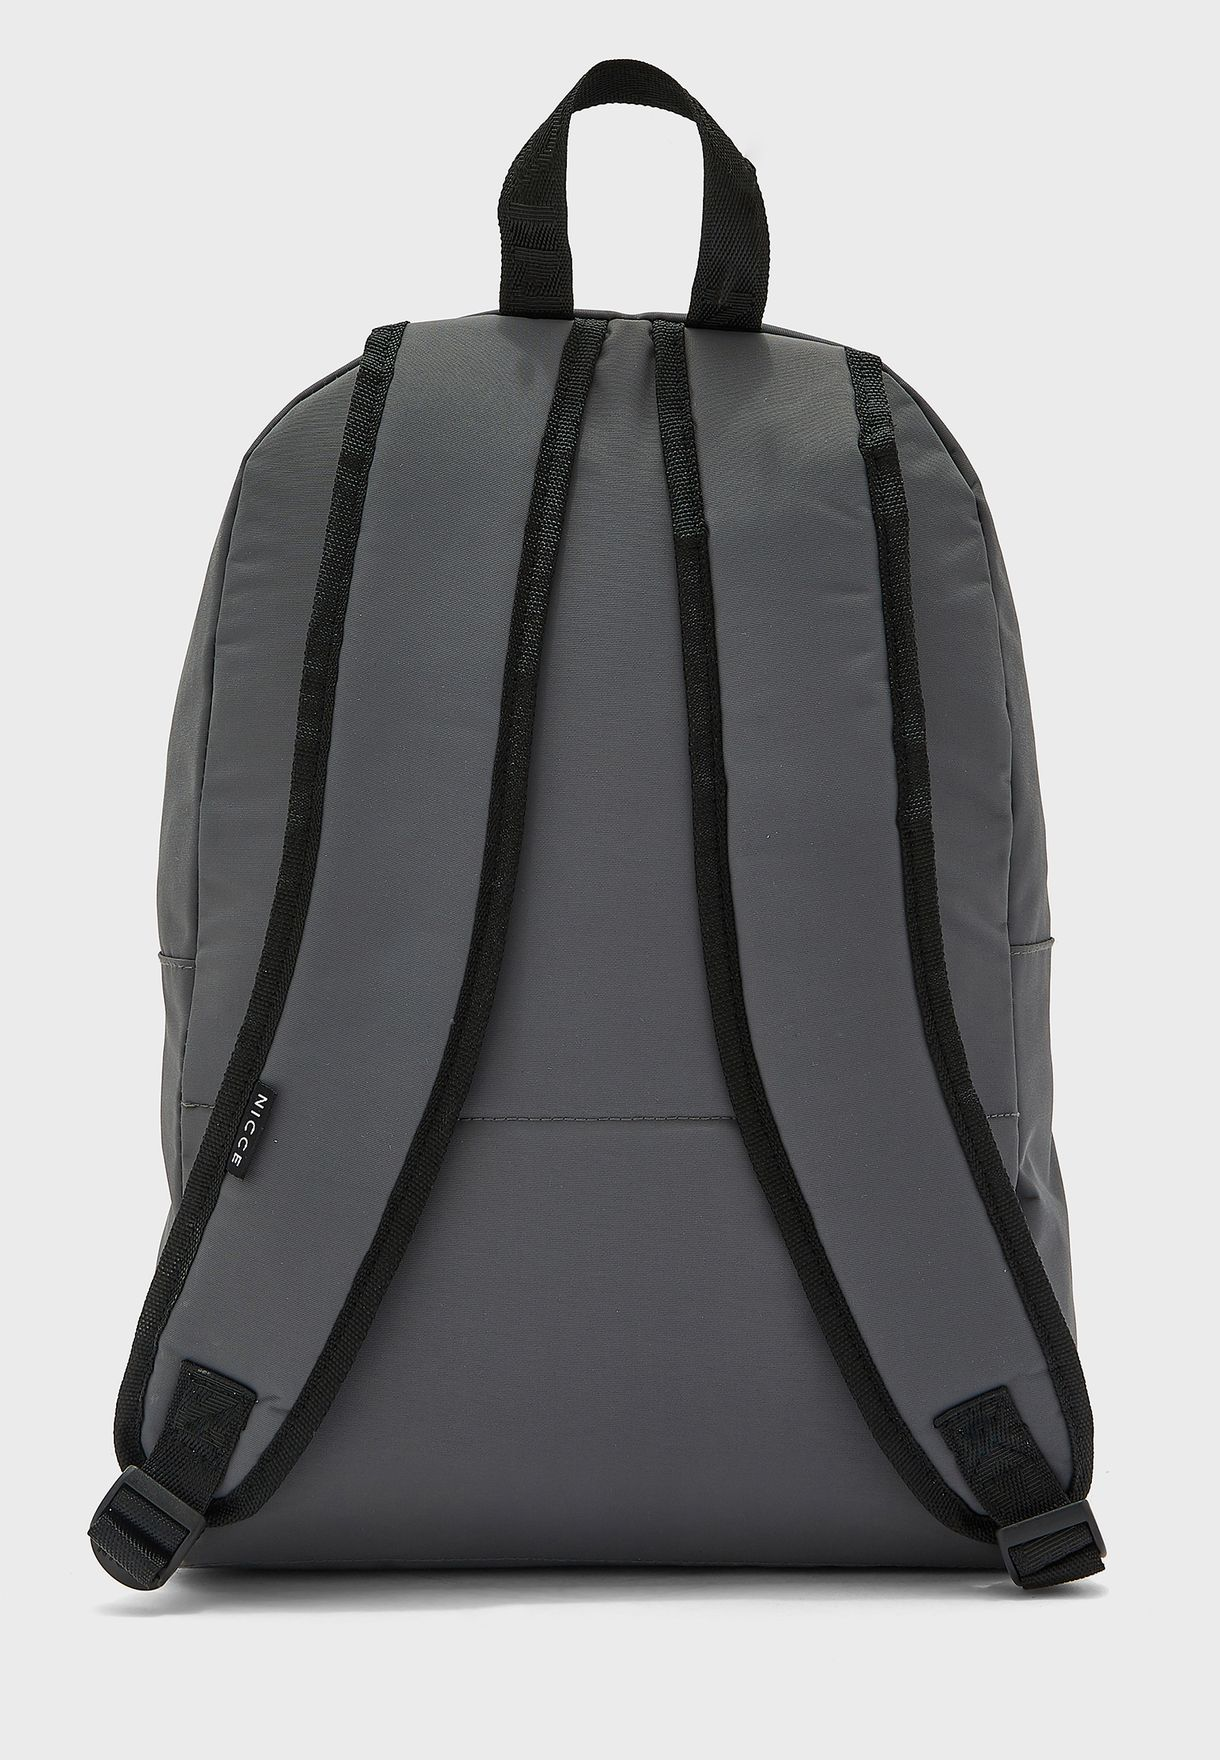 Detach Backpack + Detachable Waistbag